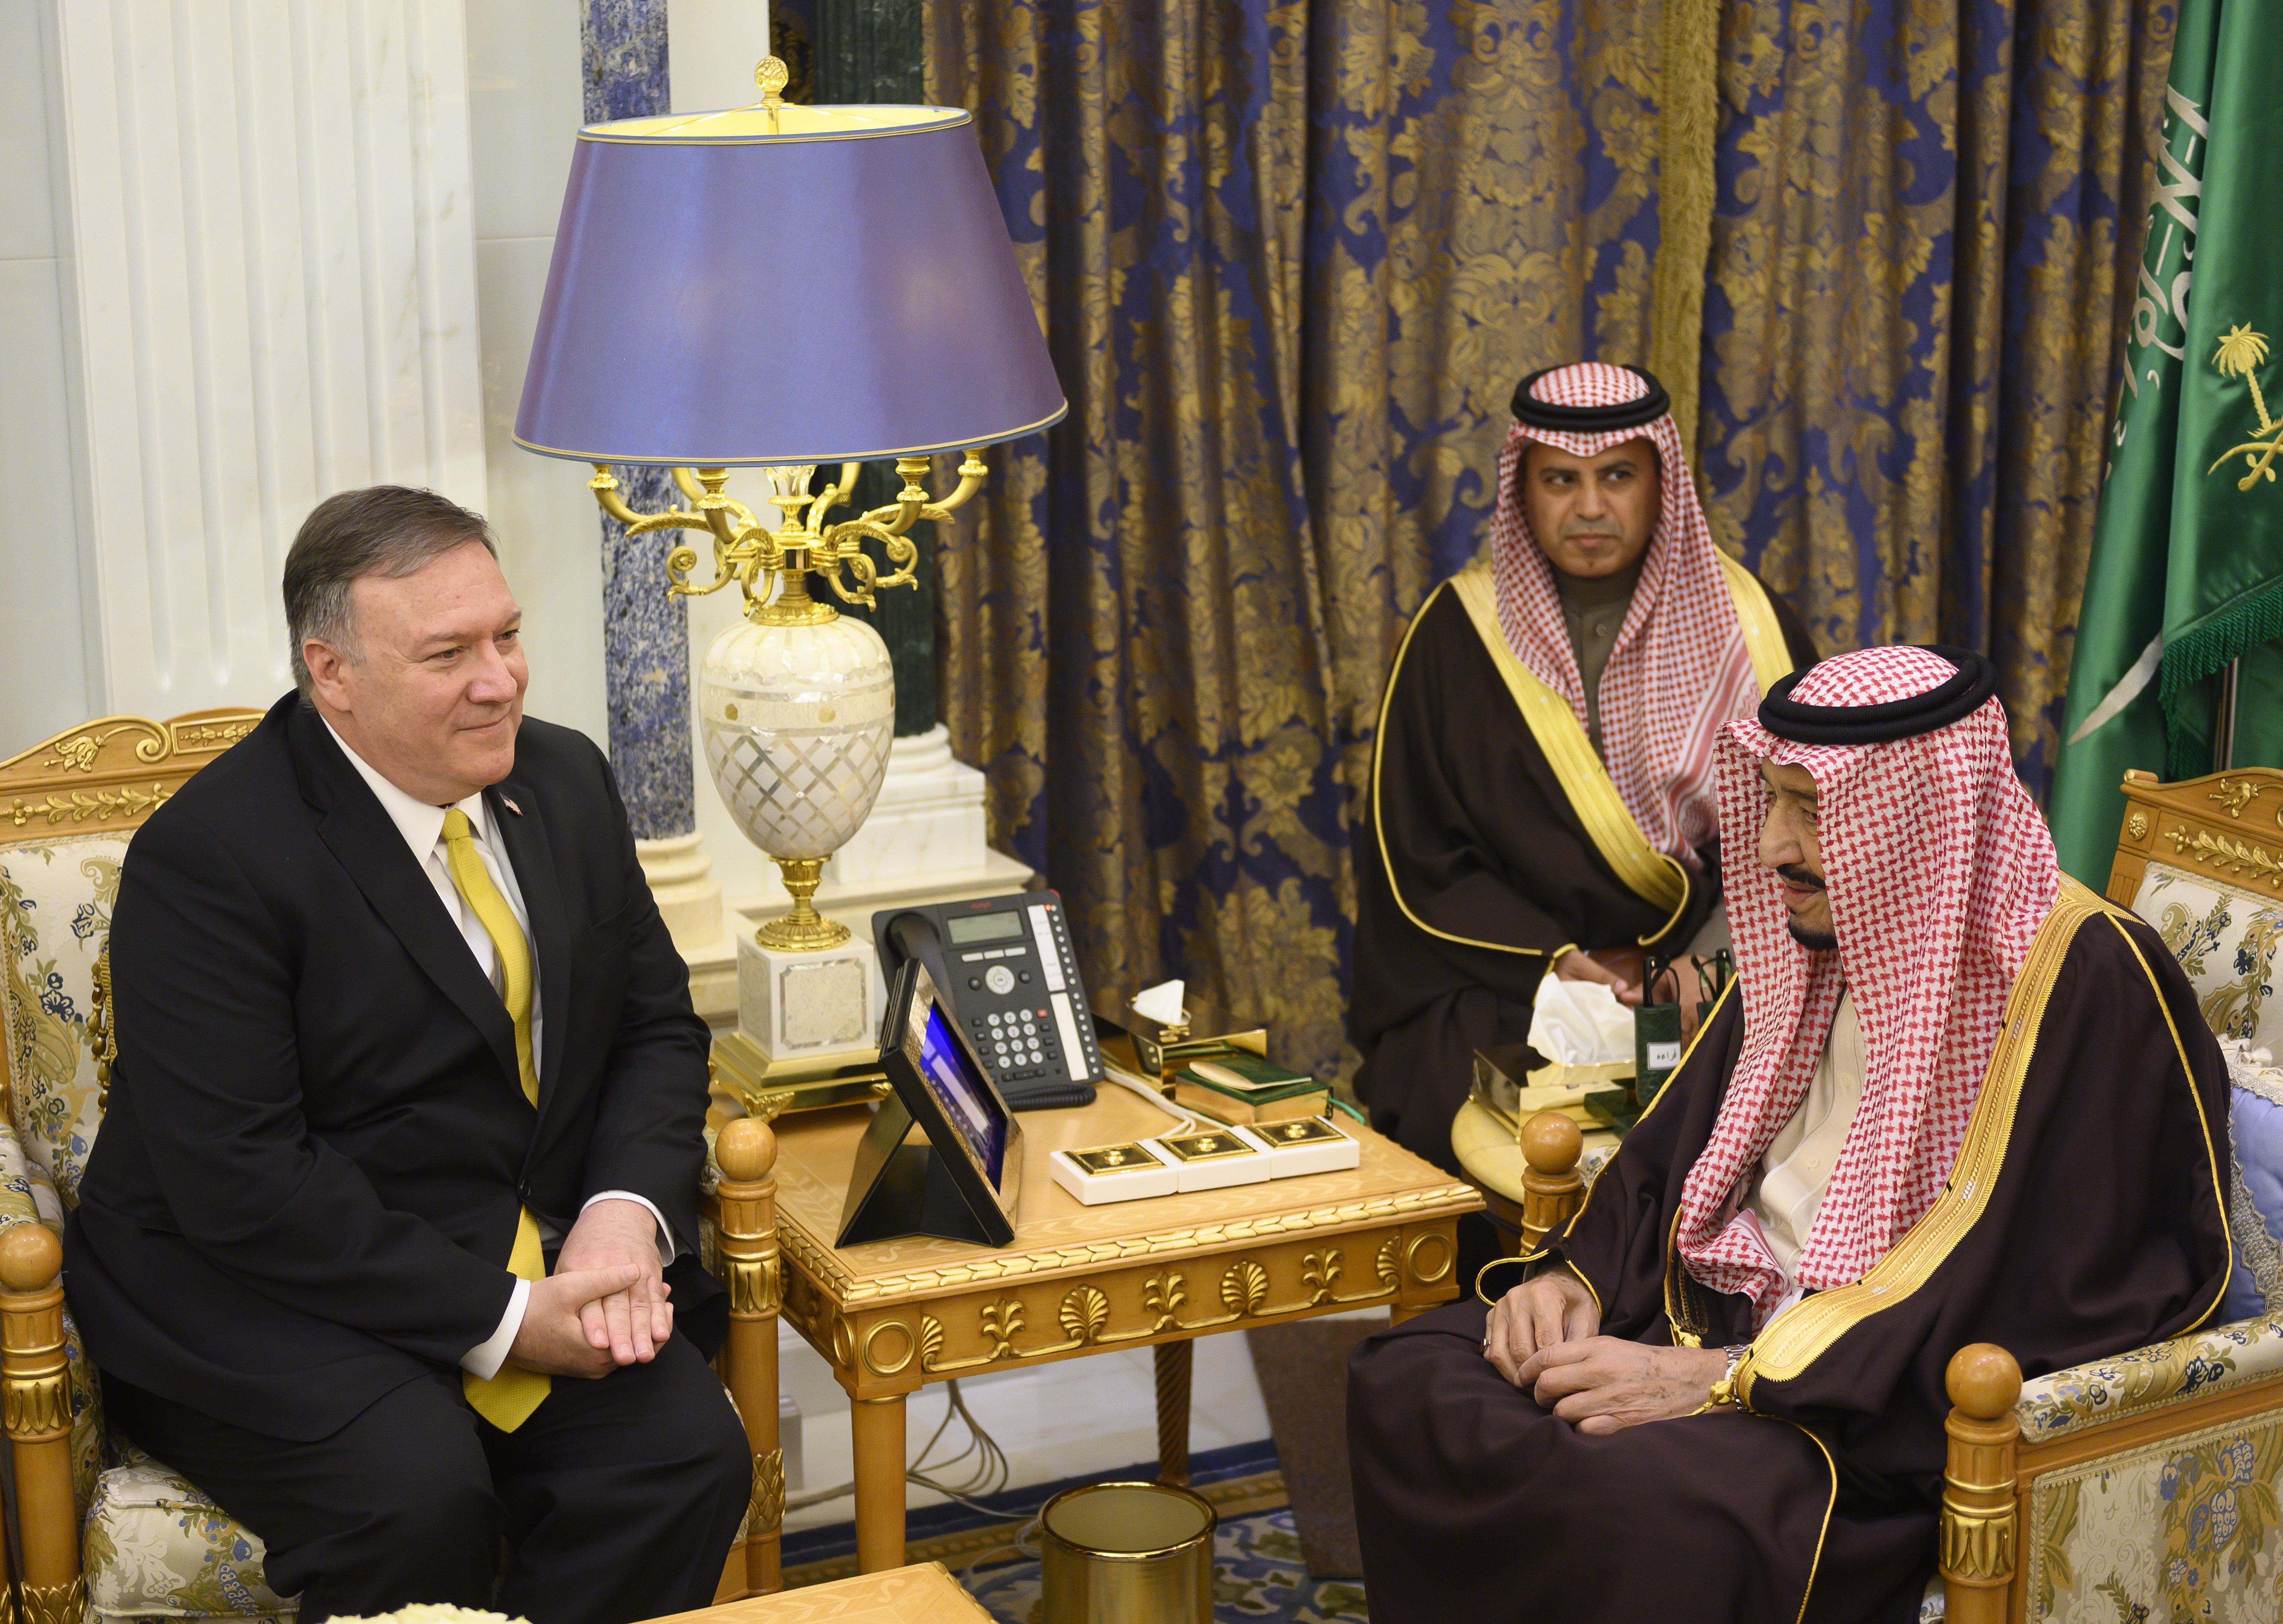 Saudi Arabia's King Salman, right meets with U.S. Secretary of State Mike Pompeo at the Royal Court in Riyadh, Monday, January 14, 2019. (Andrew Cabellero-Reynolds/Pool via AP)